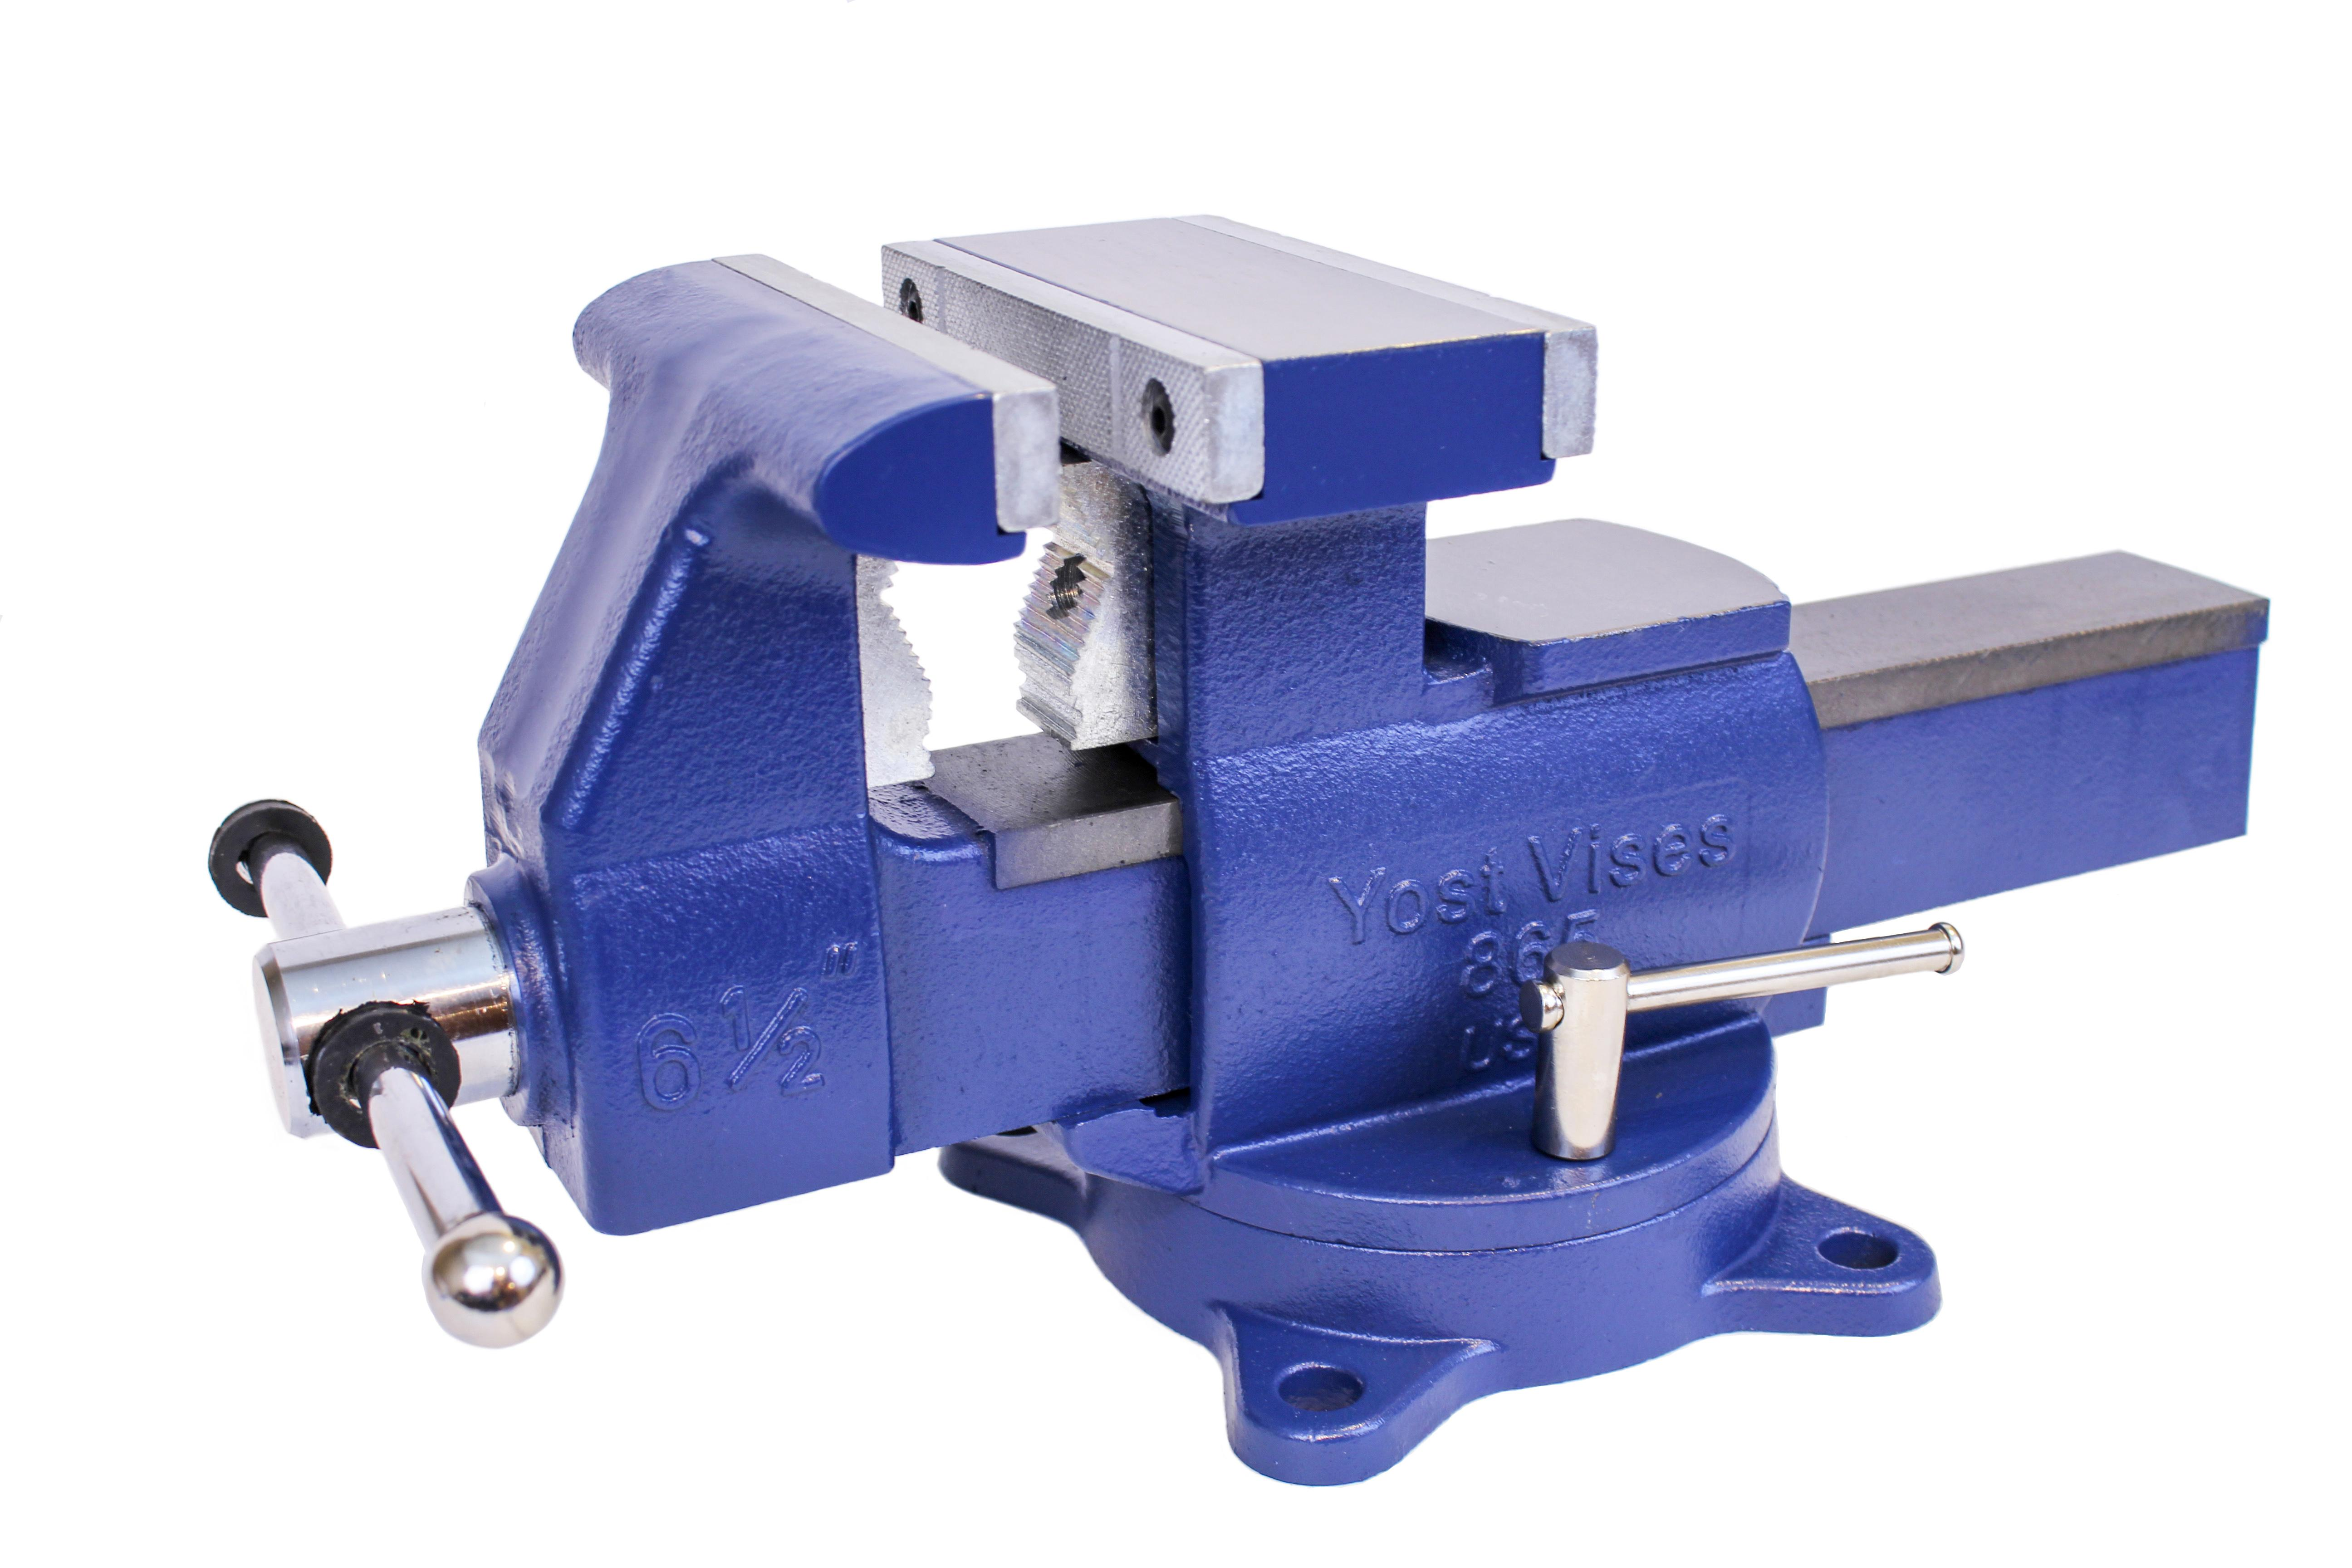 Yost Vises 880 Di 8 Heavy Duty Reversible Bench Vise Made